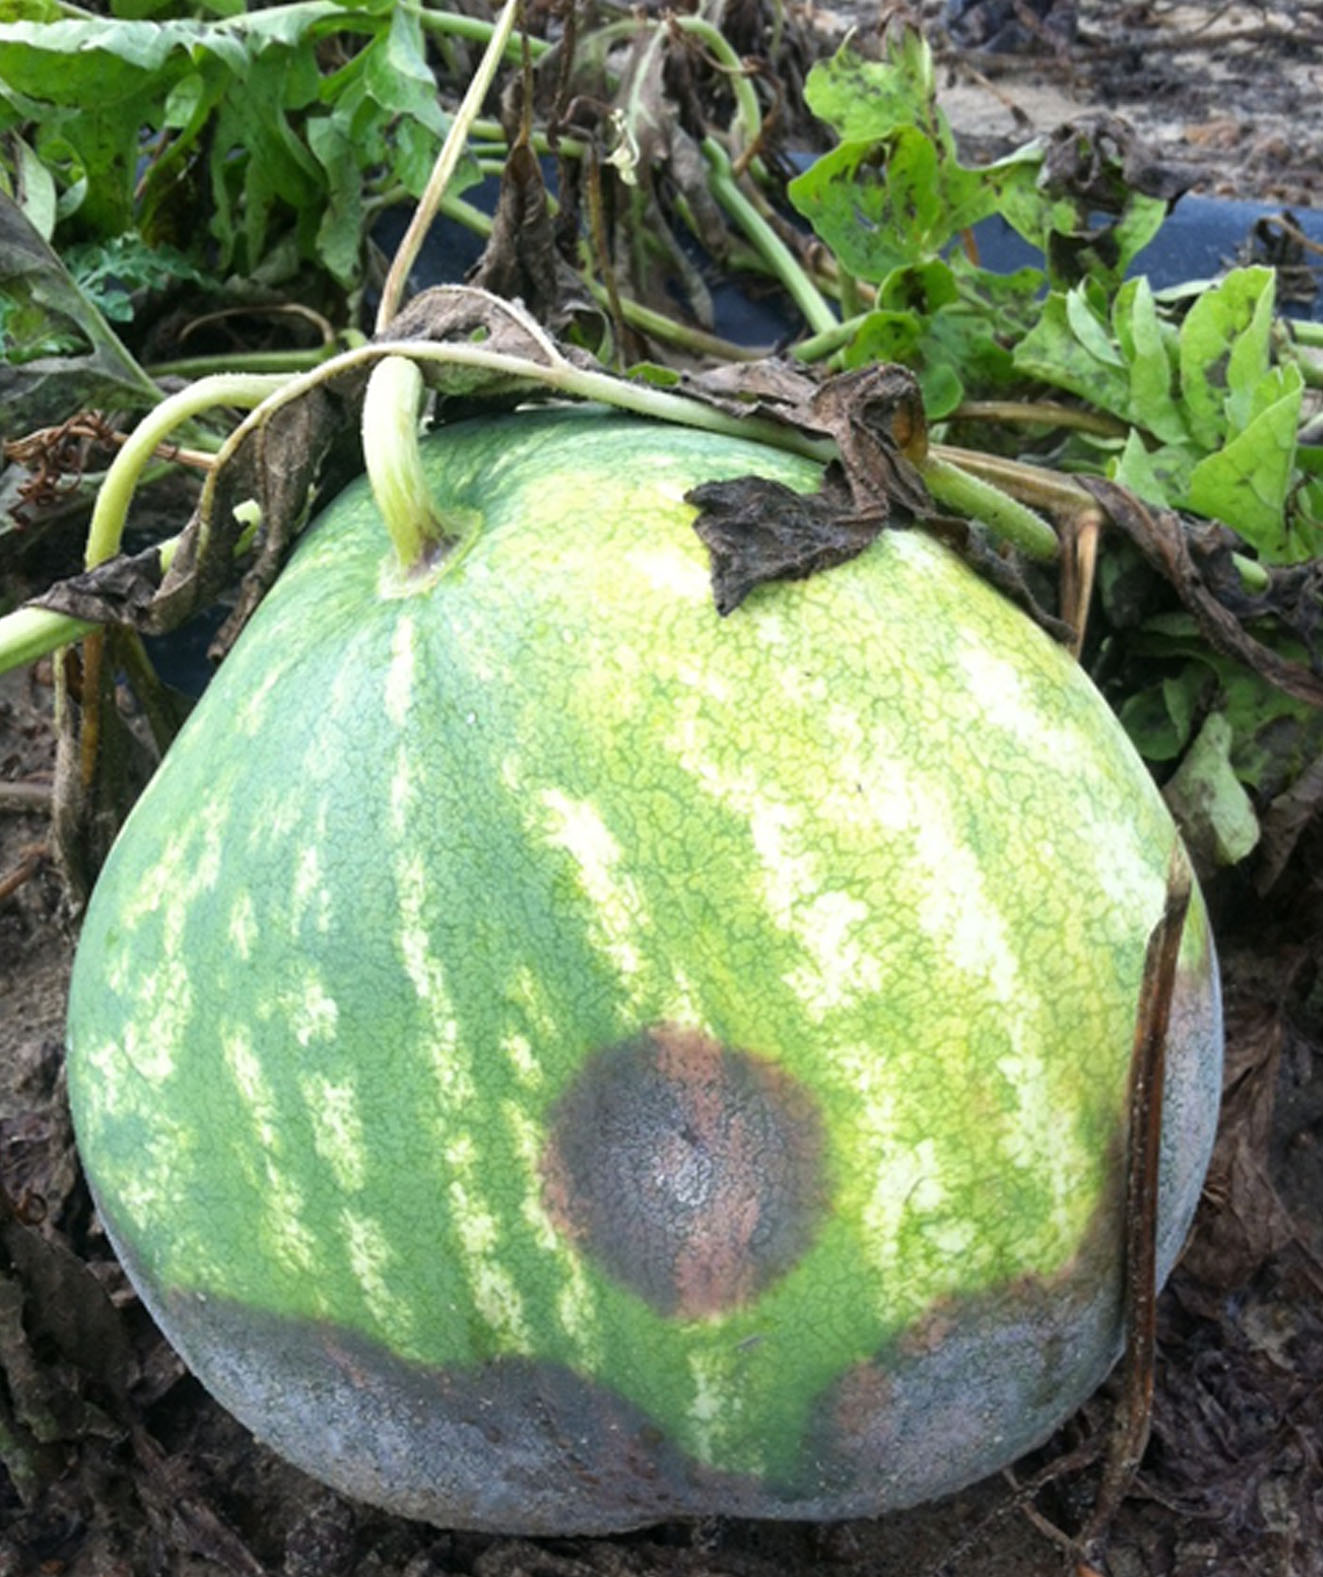 Here is a picutre of Phytophthora fruit rot damage on a watermelon in Turner County.